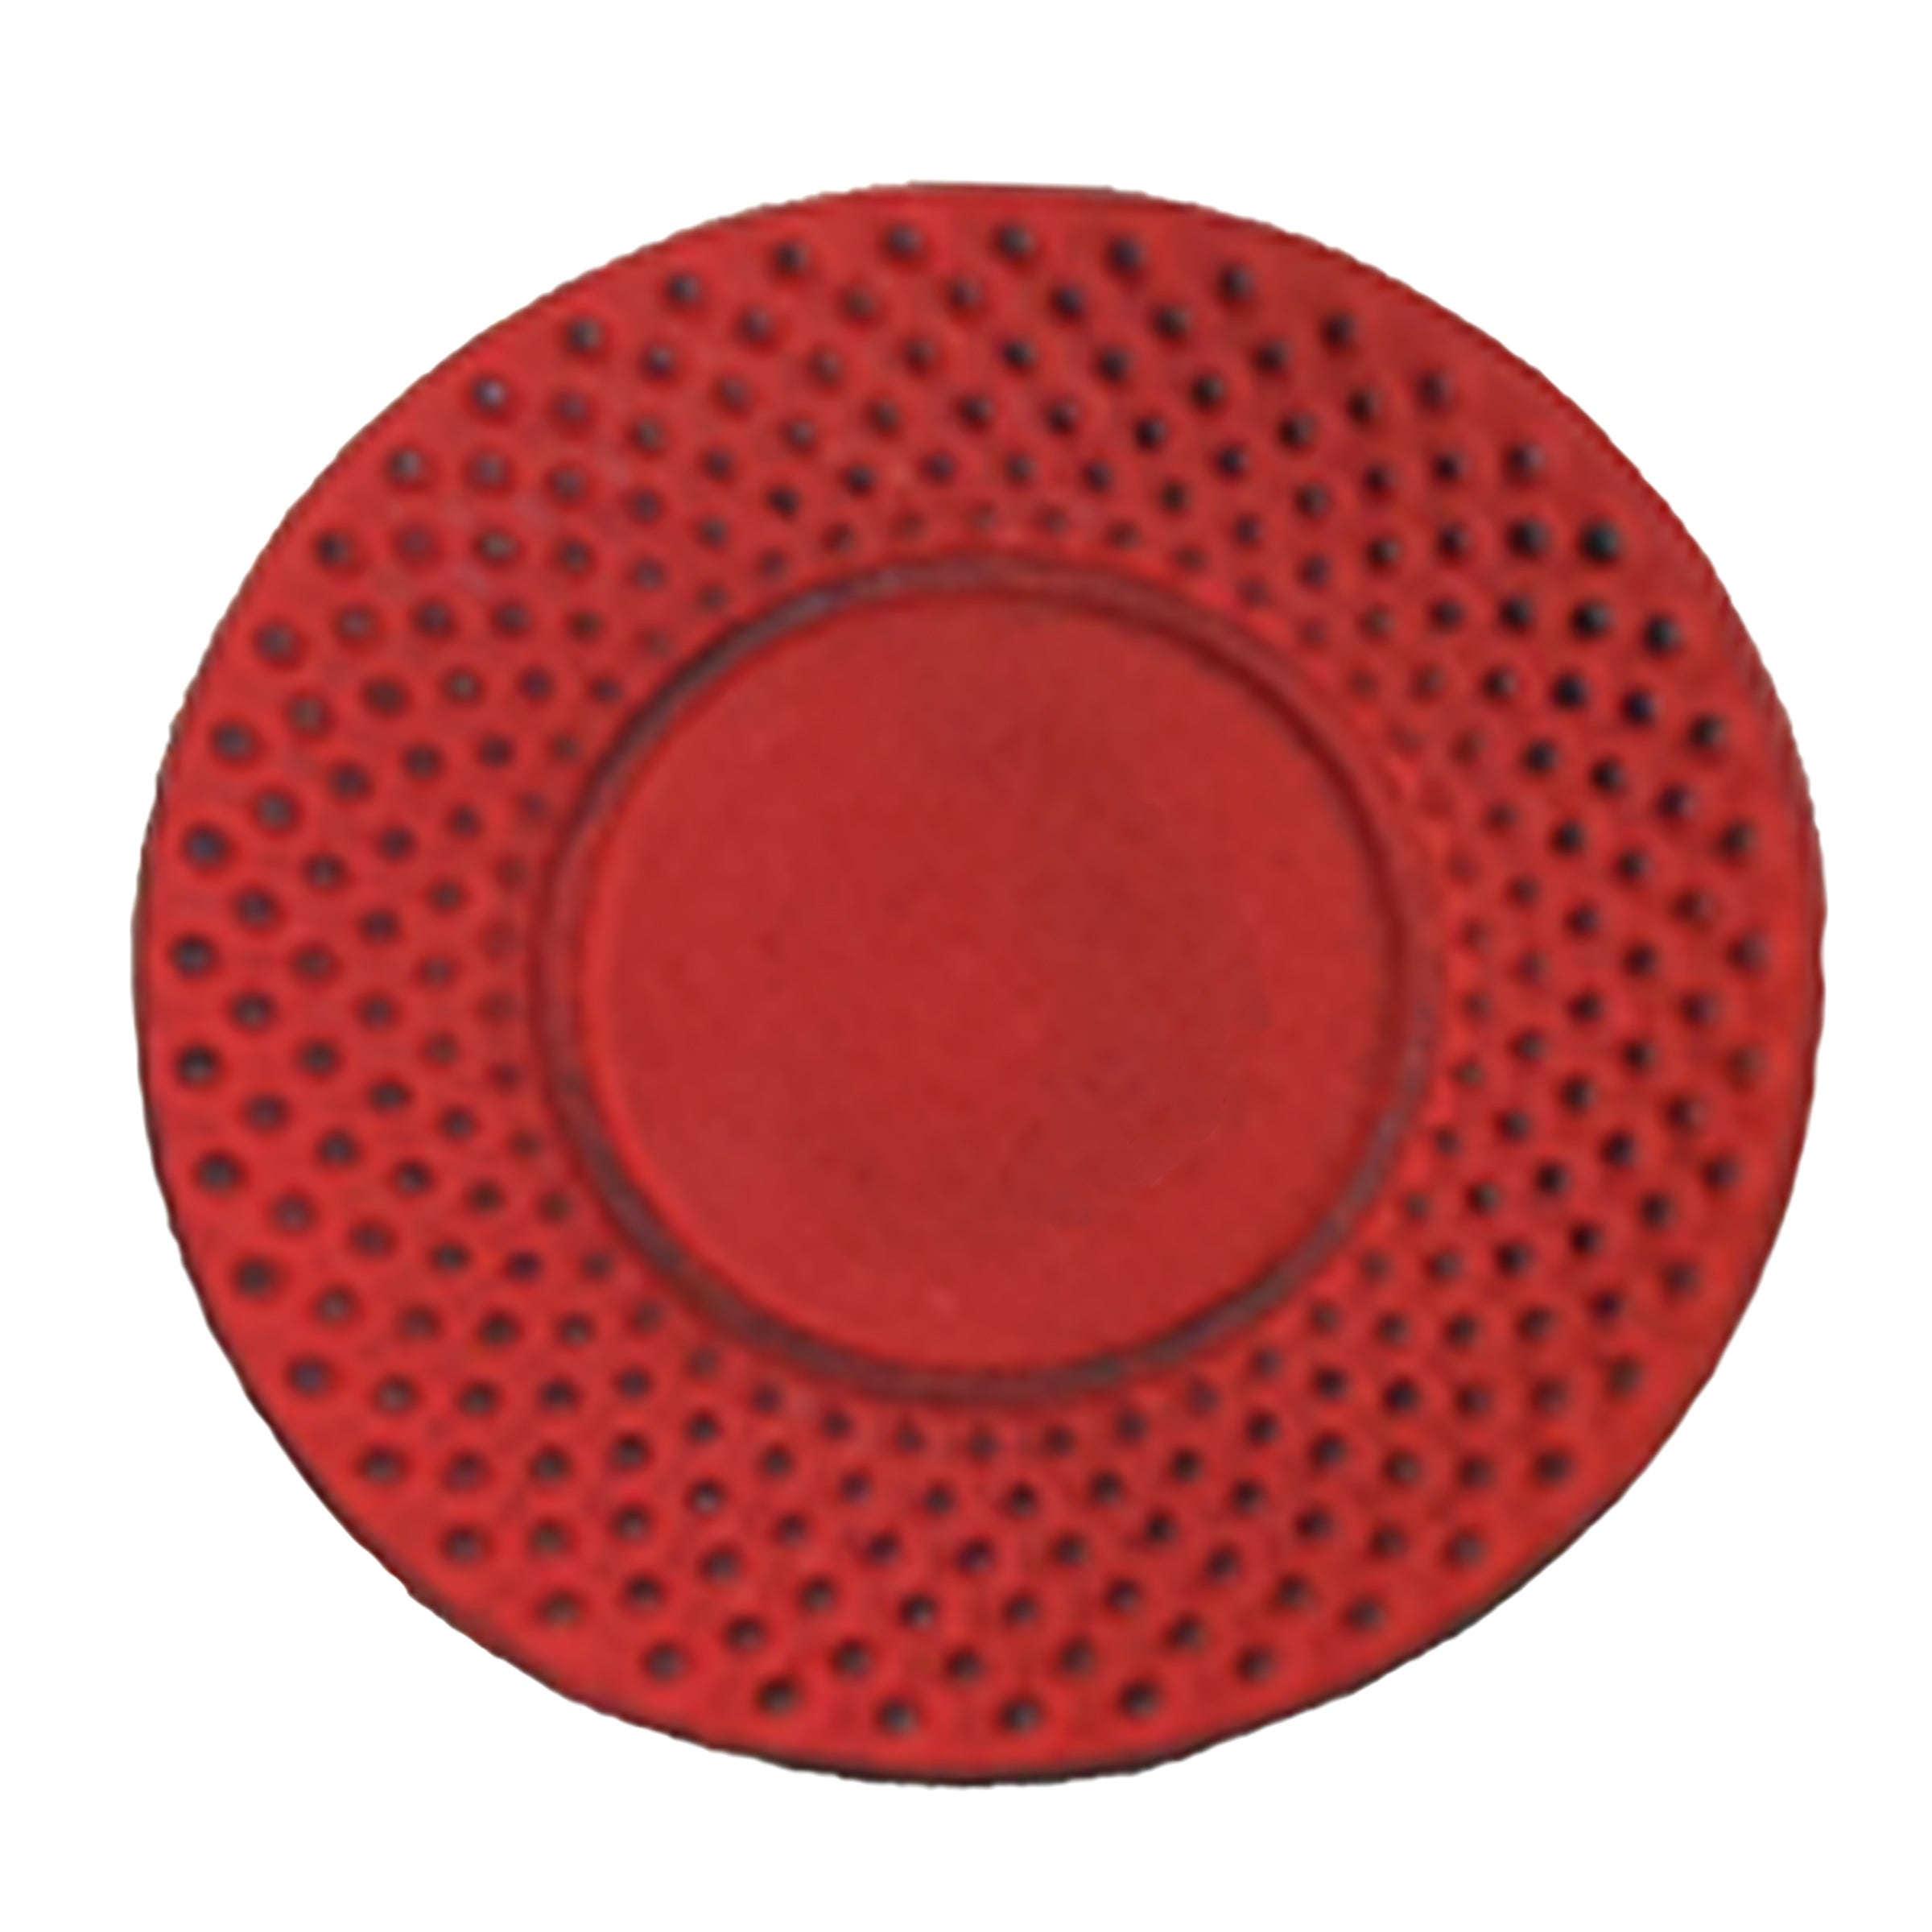 """Creative Home Red Cast Iron 3.75"""" Round Trivet, Coaster. Opens flyout."""